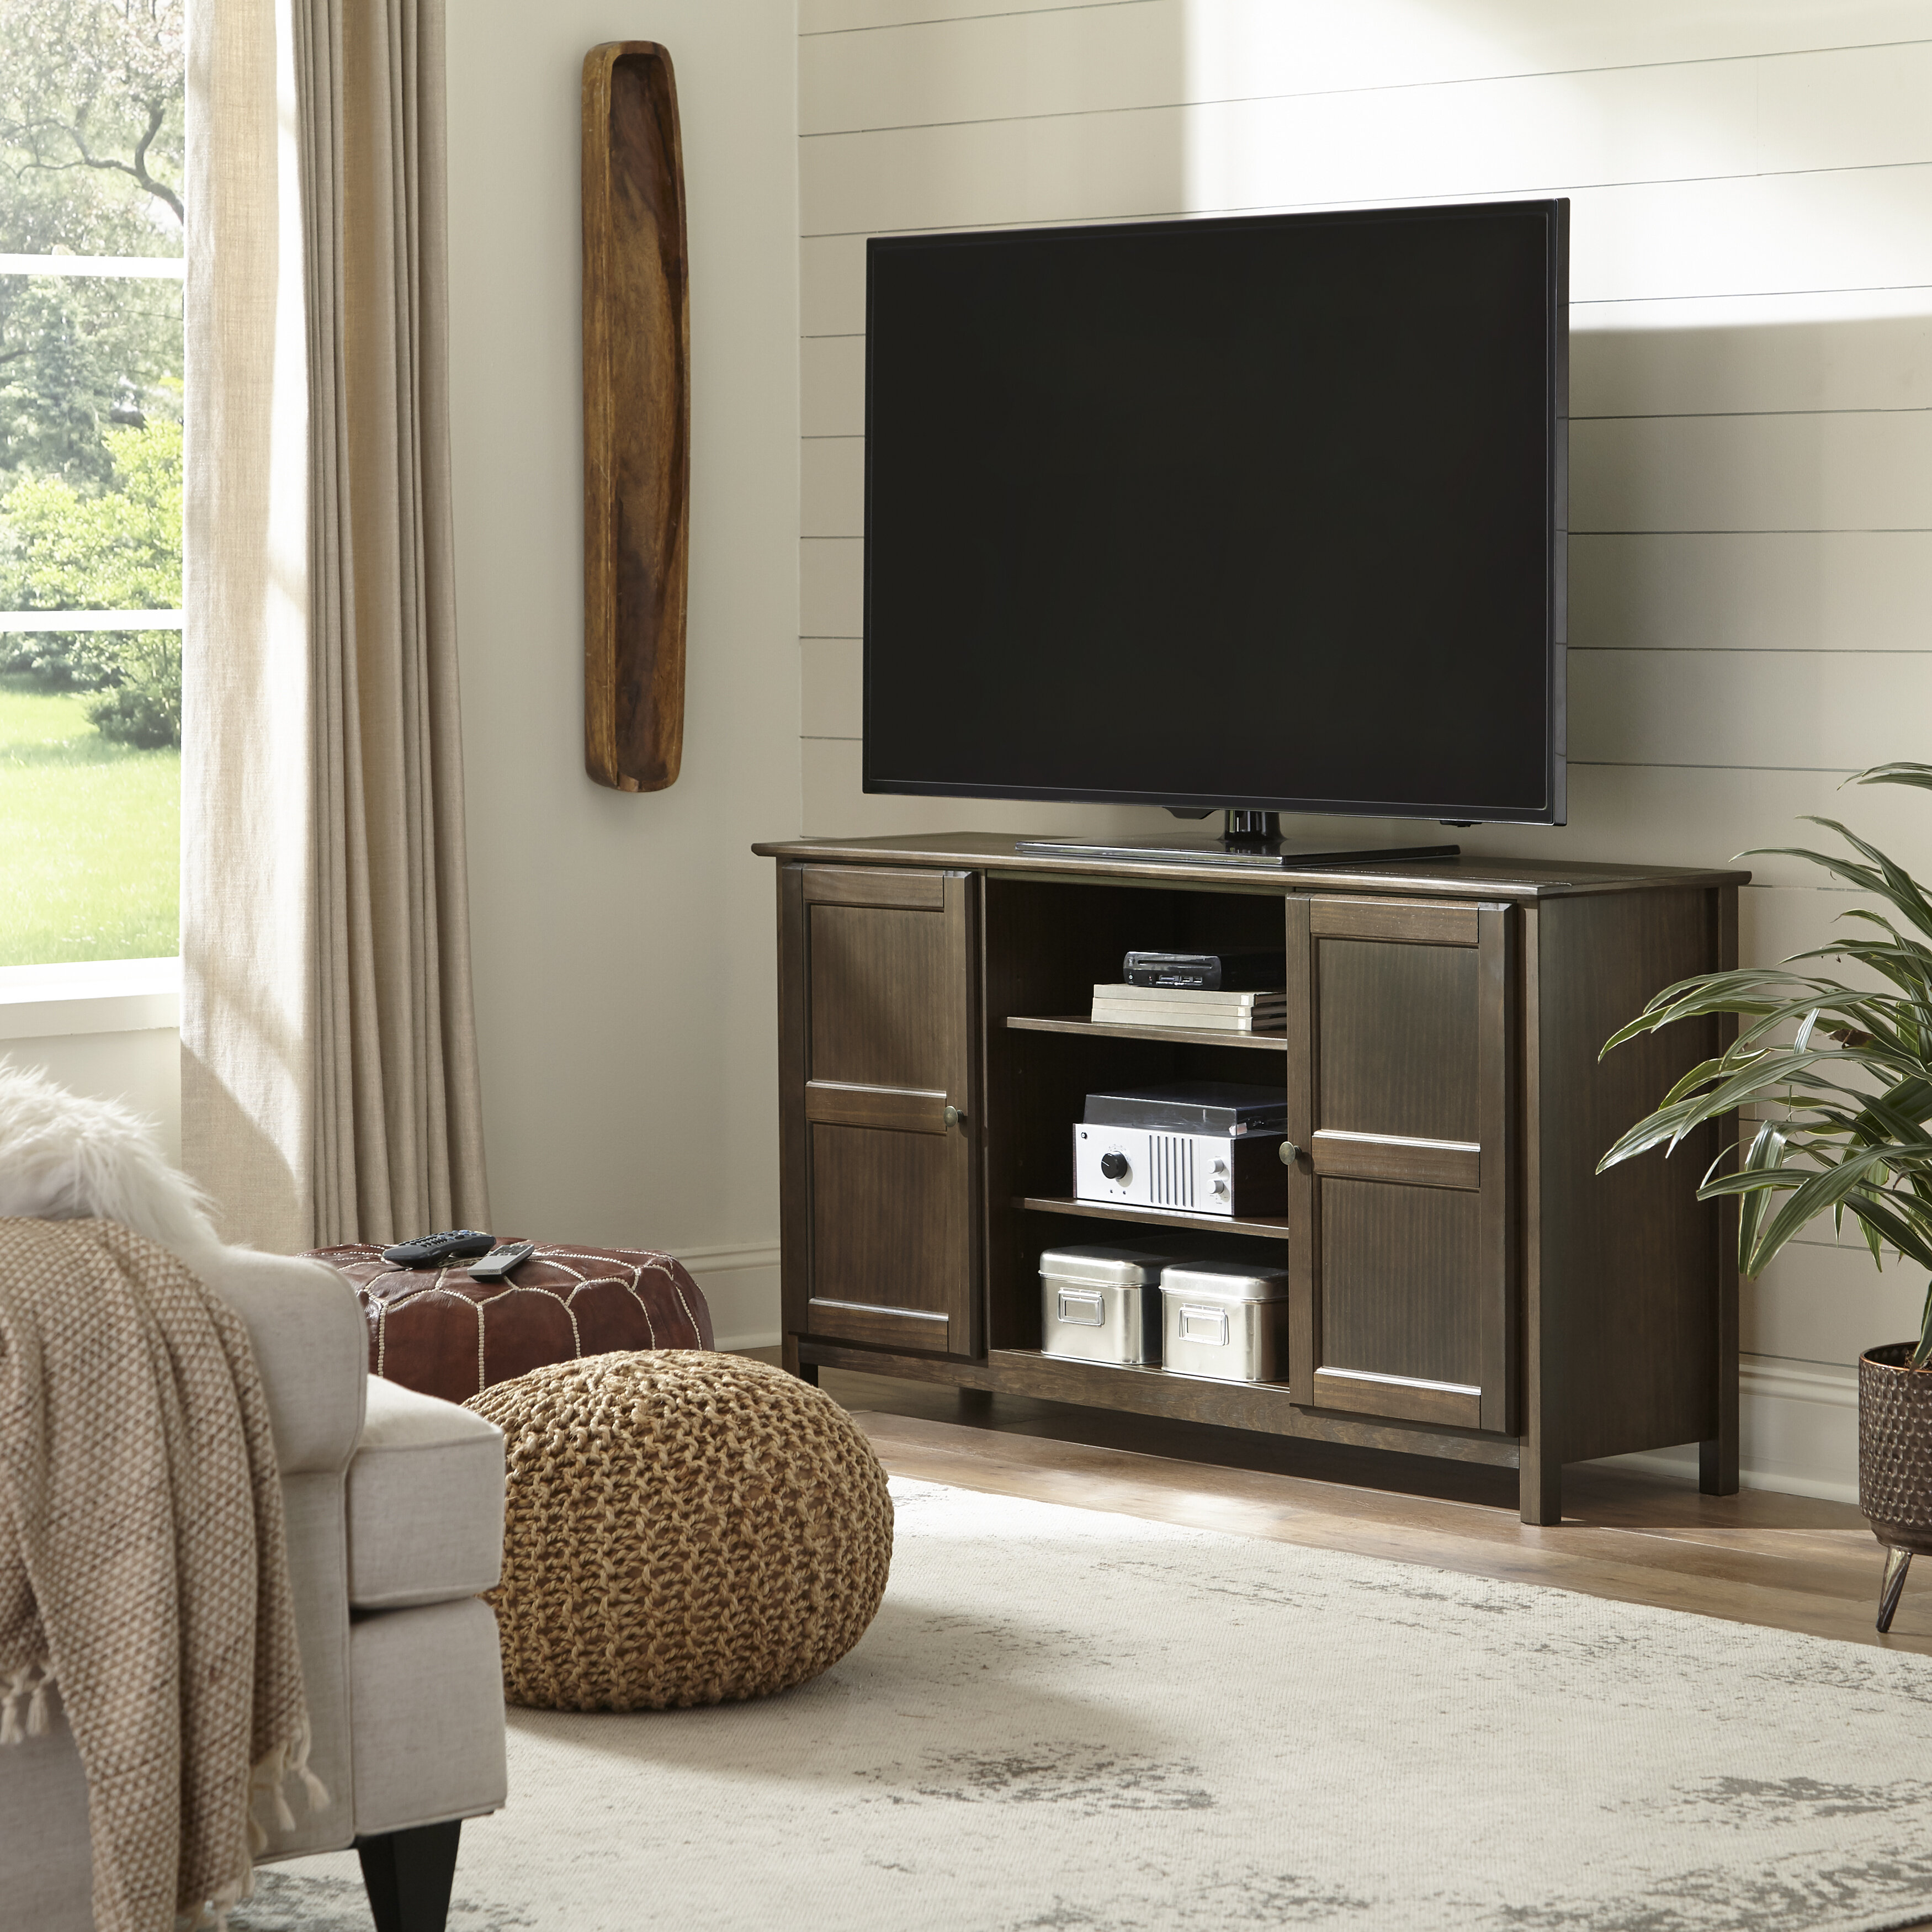 Grain Wood Furniture Shaker Solid Wood Tv Stand For Tvs Up To 65 Reviews